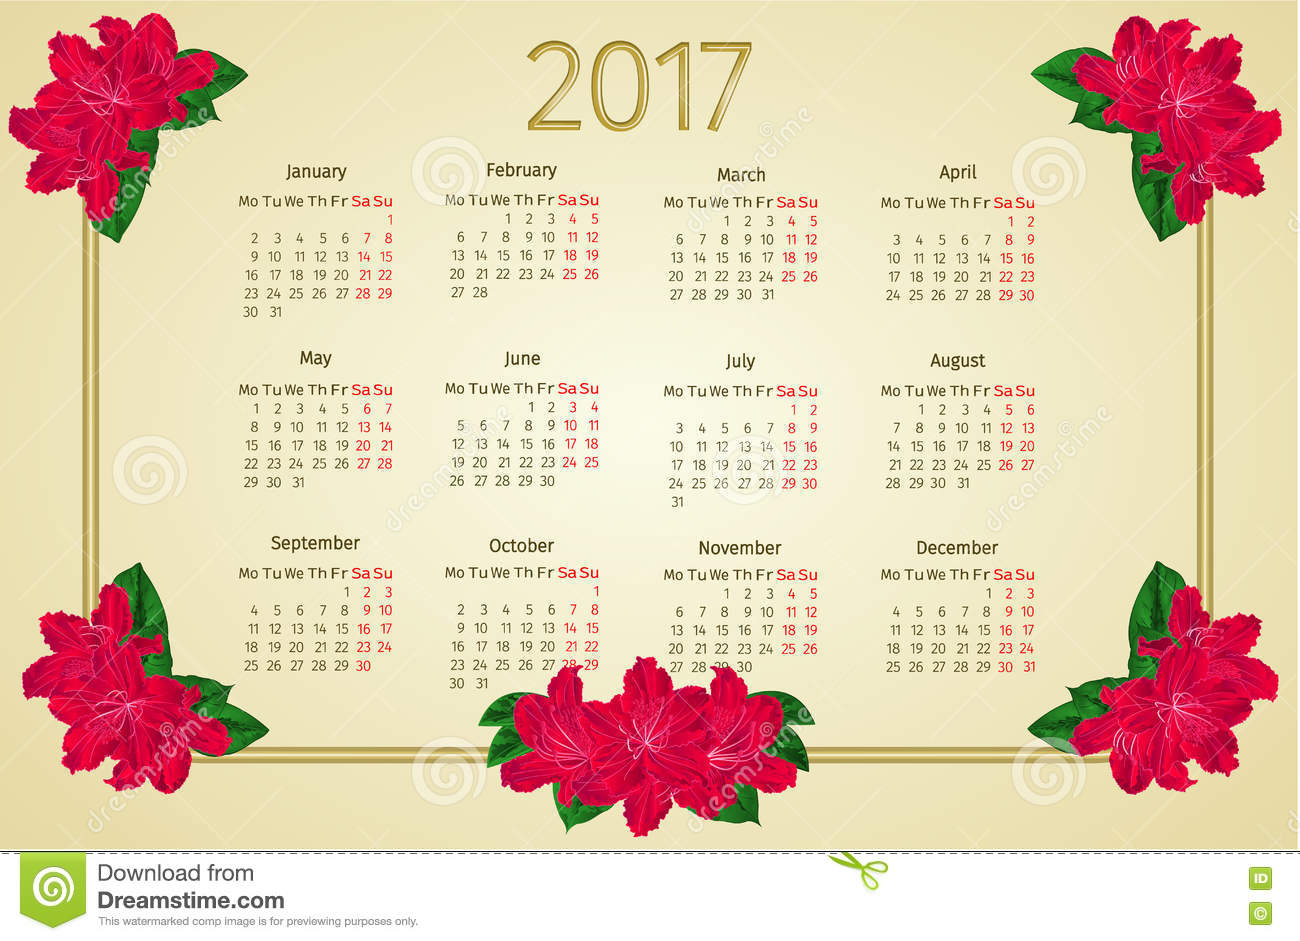 Calendar 2017 With Red Rhododendron Flowers Vintage Vector Stock.